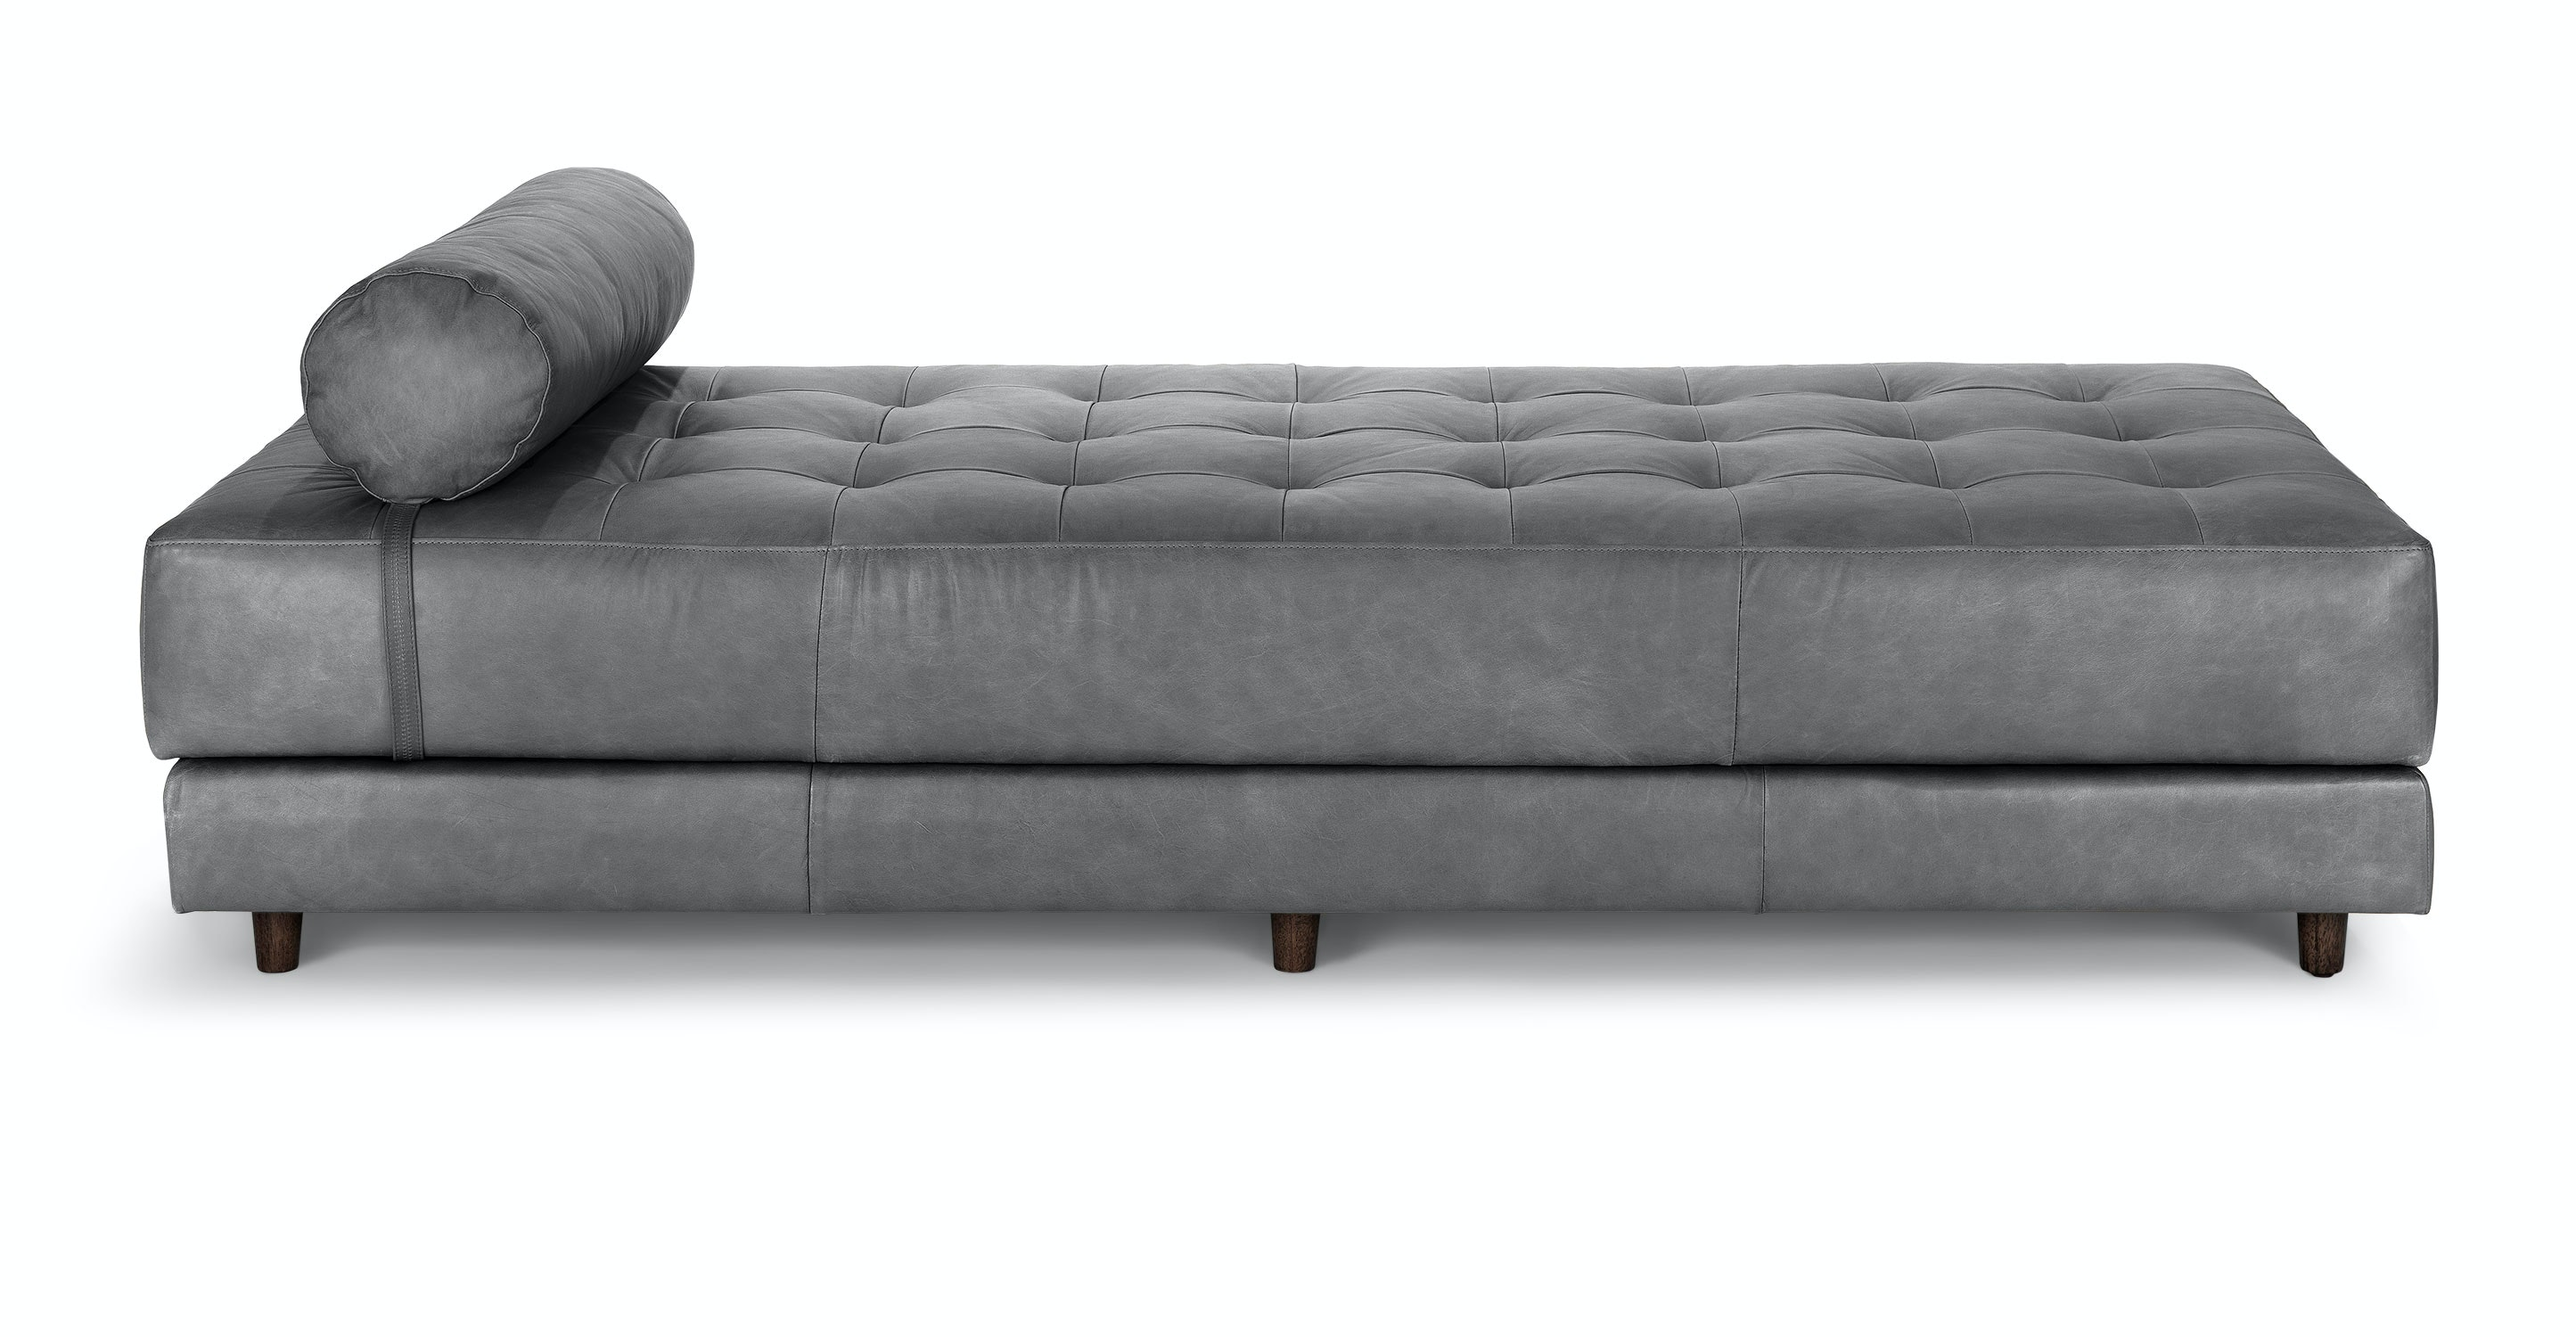 Sven Charme Chocolat Daybed - Sofas - Article | Modern, Mid-Century And  Scandinavian Furniture